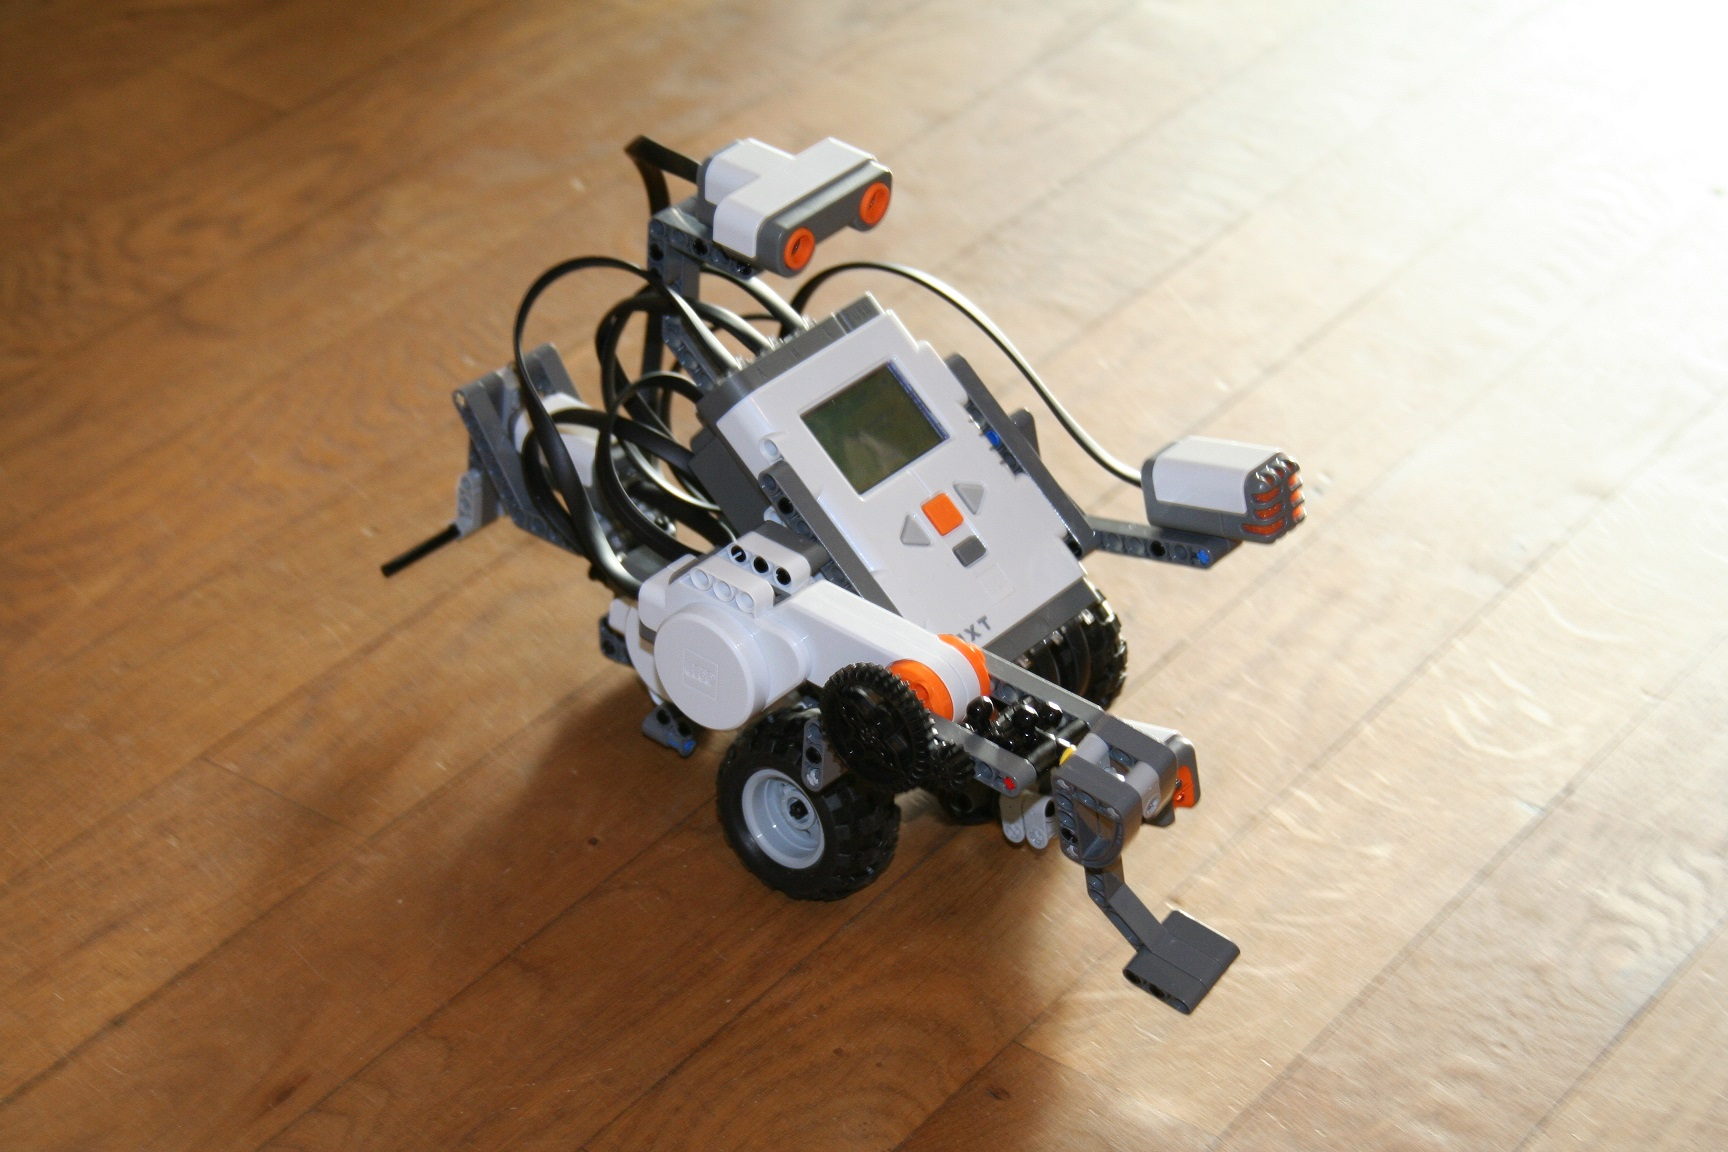 Lego_Mindstorms_Nxt-FLL1